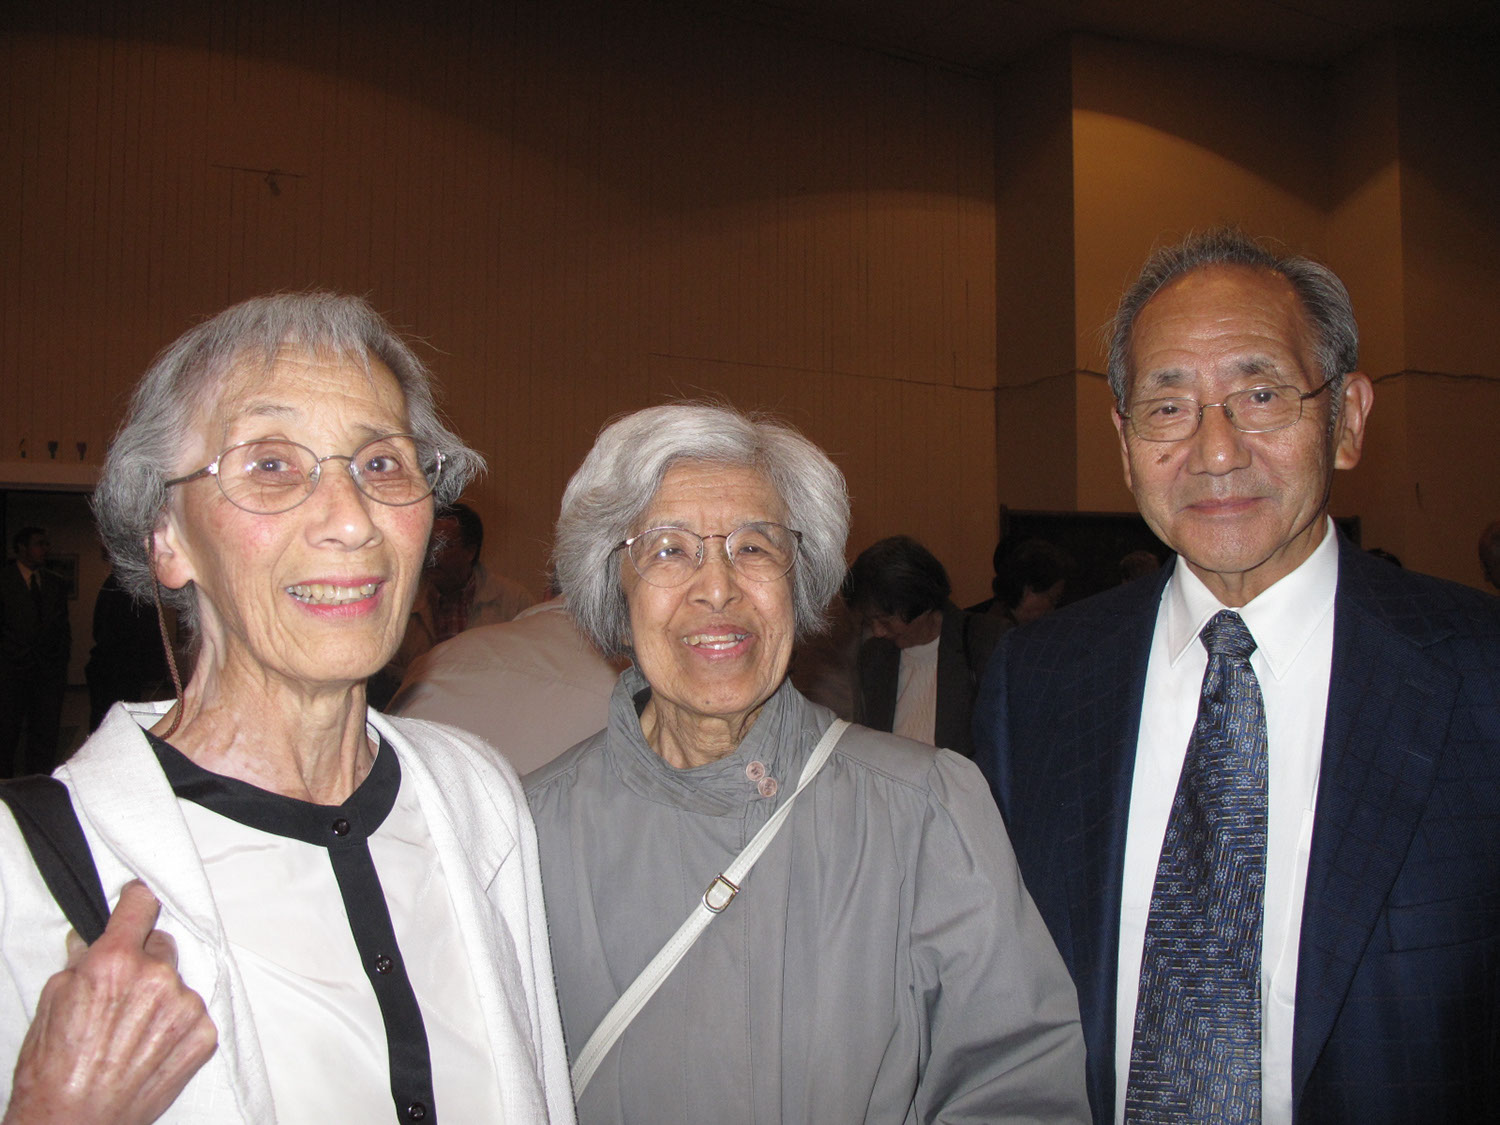 Three members of the English-speaking congregation